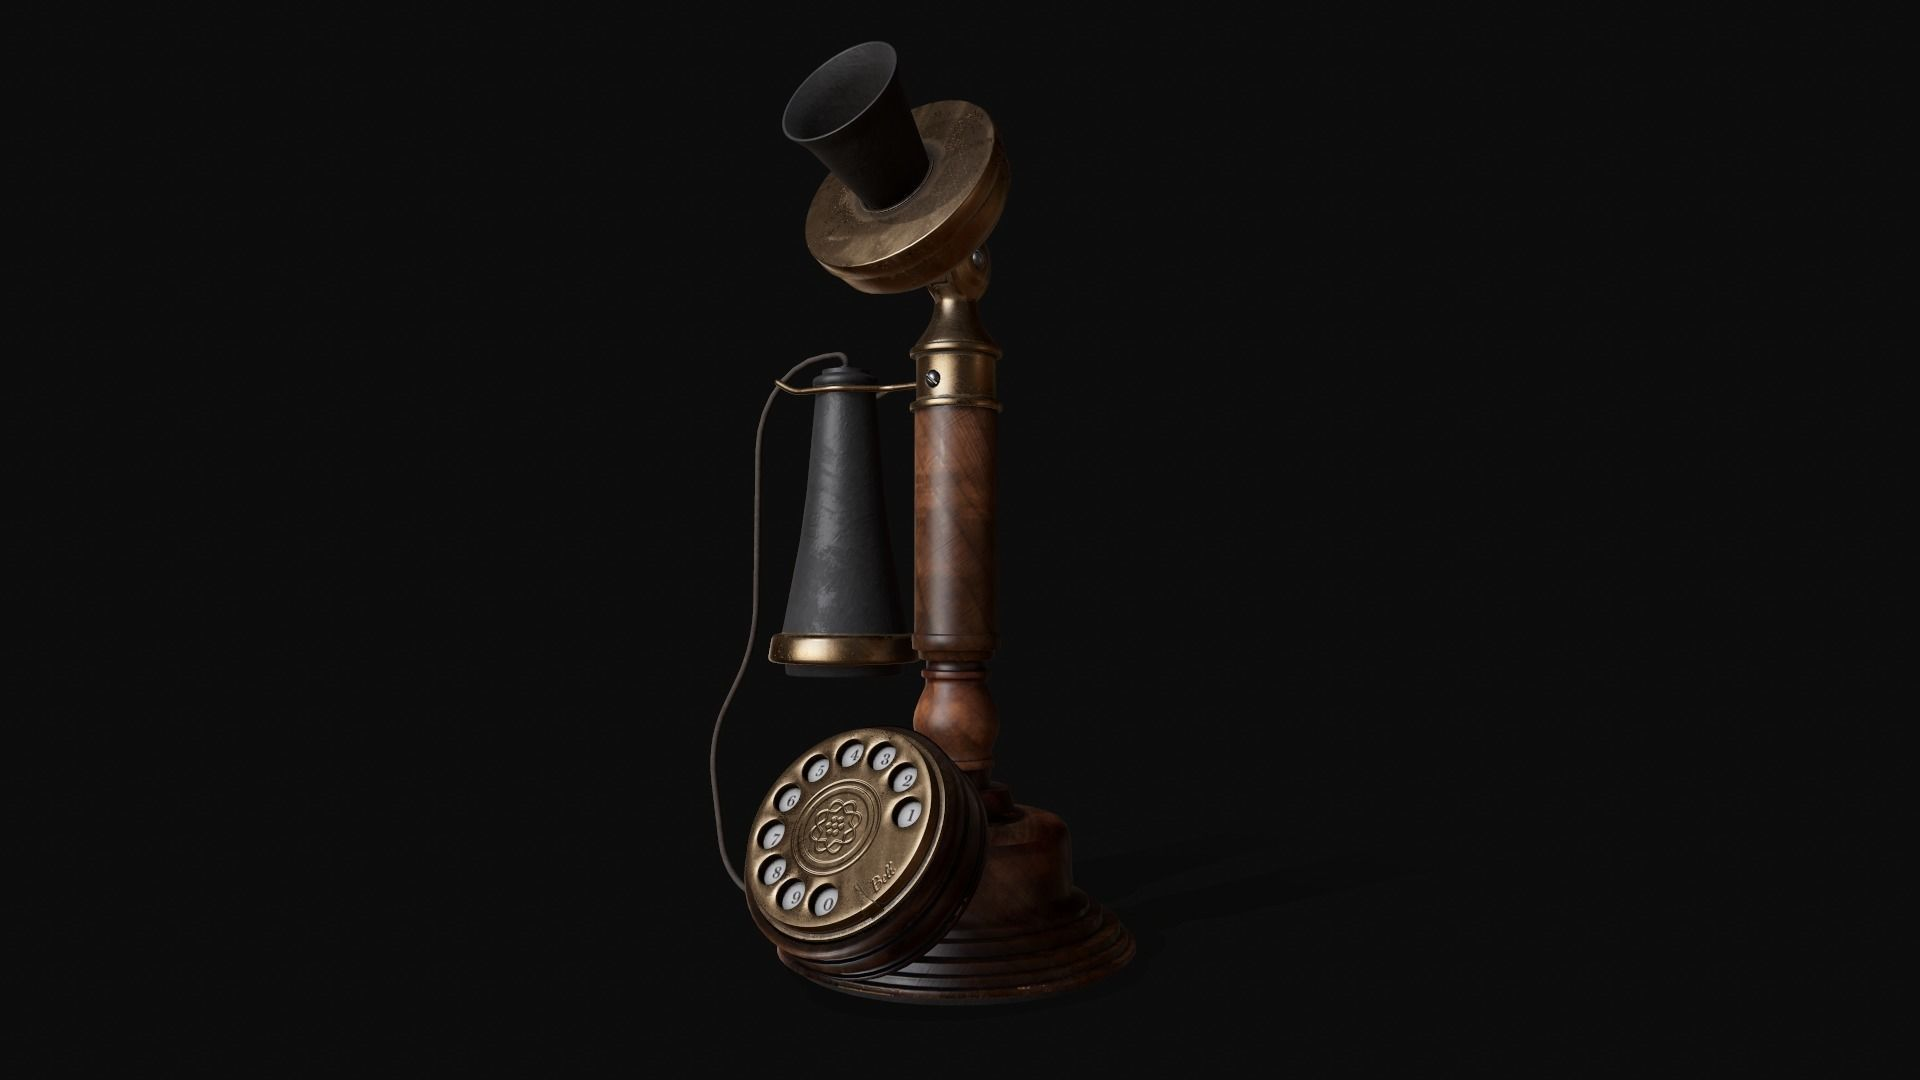 Old Candlestick Phone